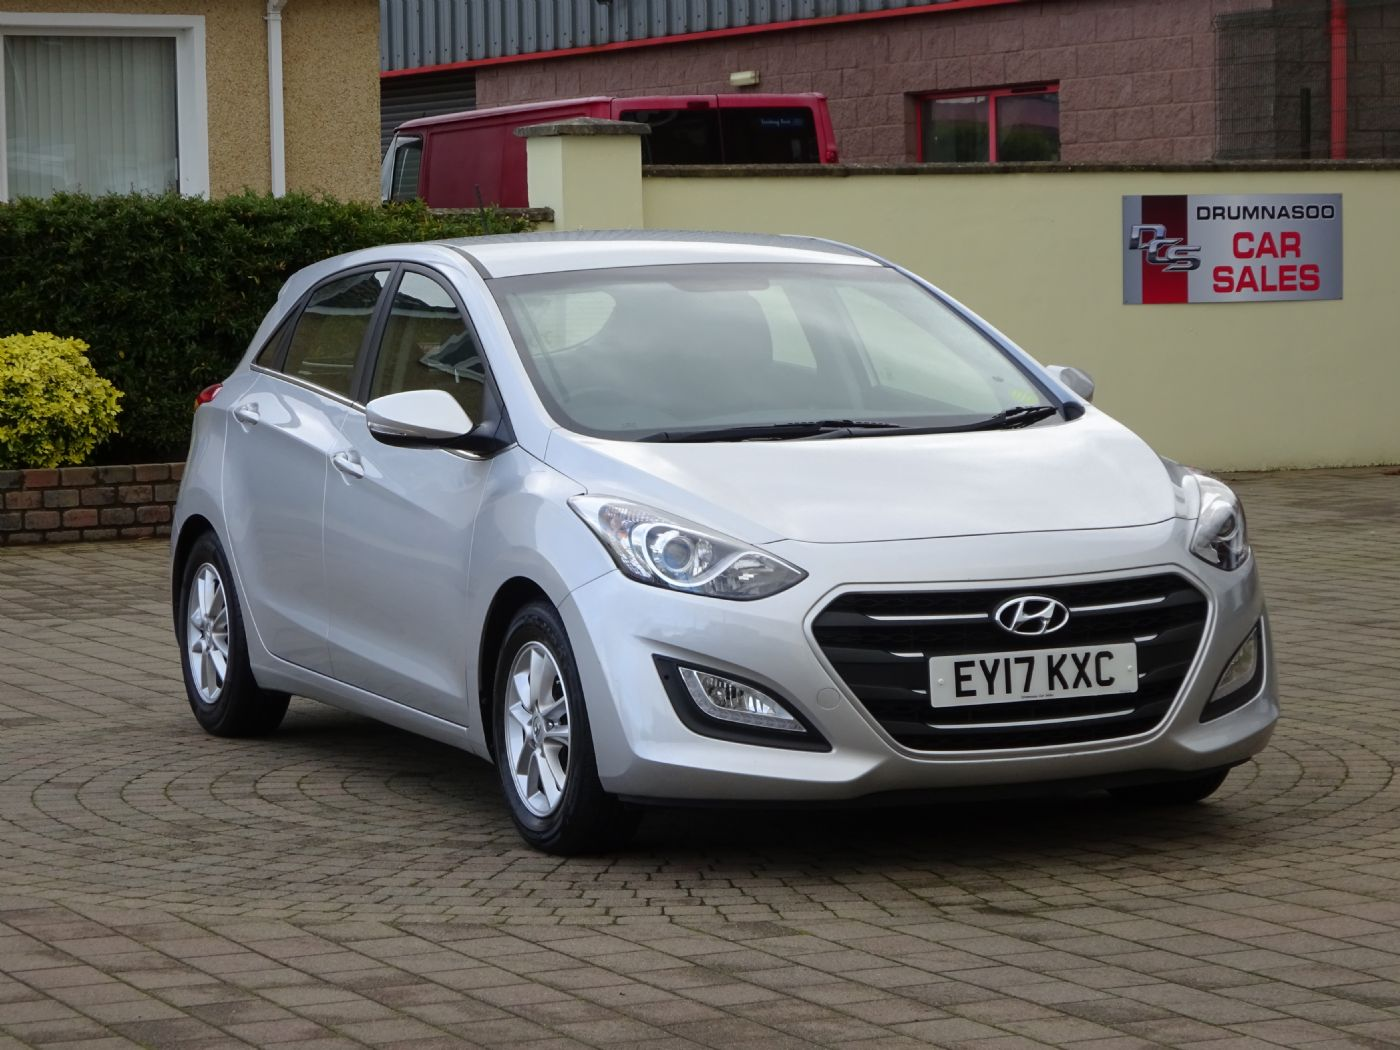 Hyundai I30 SE Nav , 1.6 CRDI, Rear view camera, Zero road tax